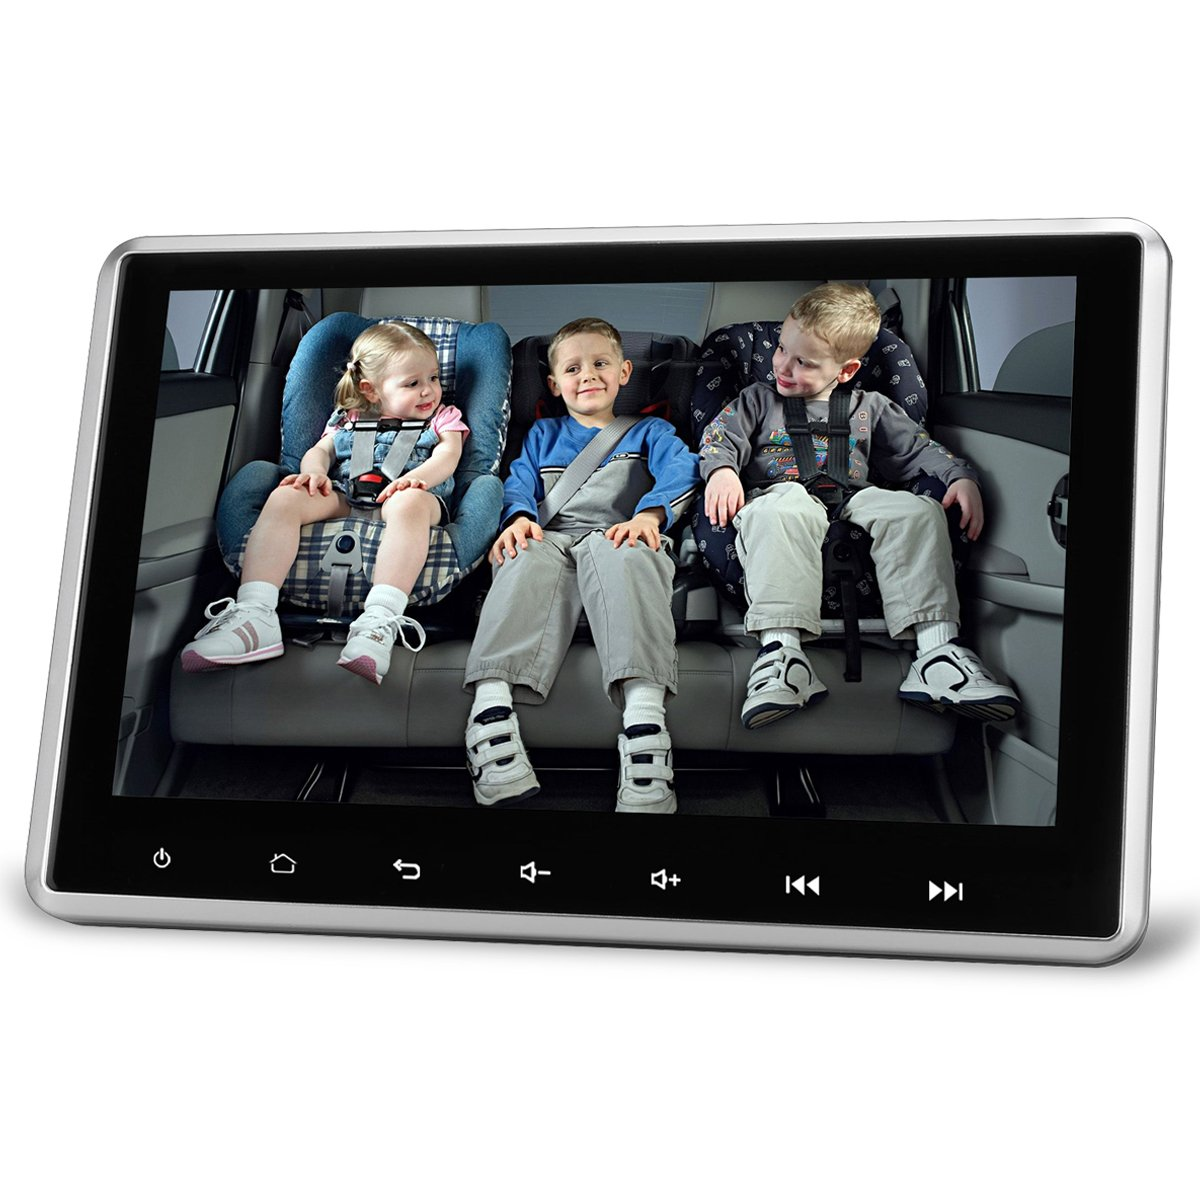 Headrest Video Player Monitor Android 5.1 System For Car 1080P 10.1 Inch Big Capacitive Screen 2 IN 1 Home Use and In Car Use With USB SD Port WIFI Support eRapta EA101 Black by eRapta